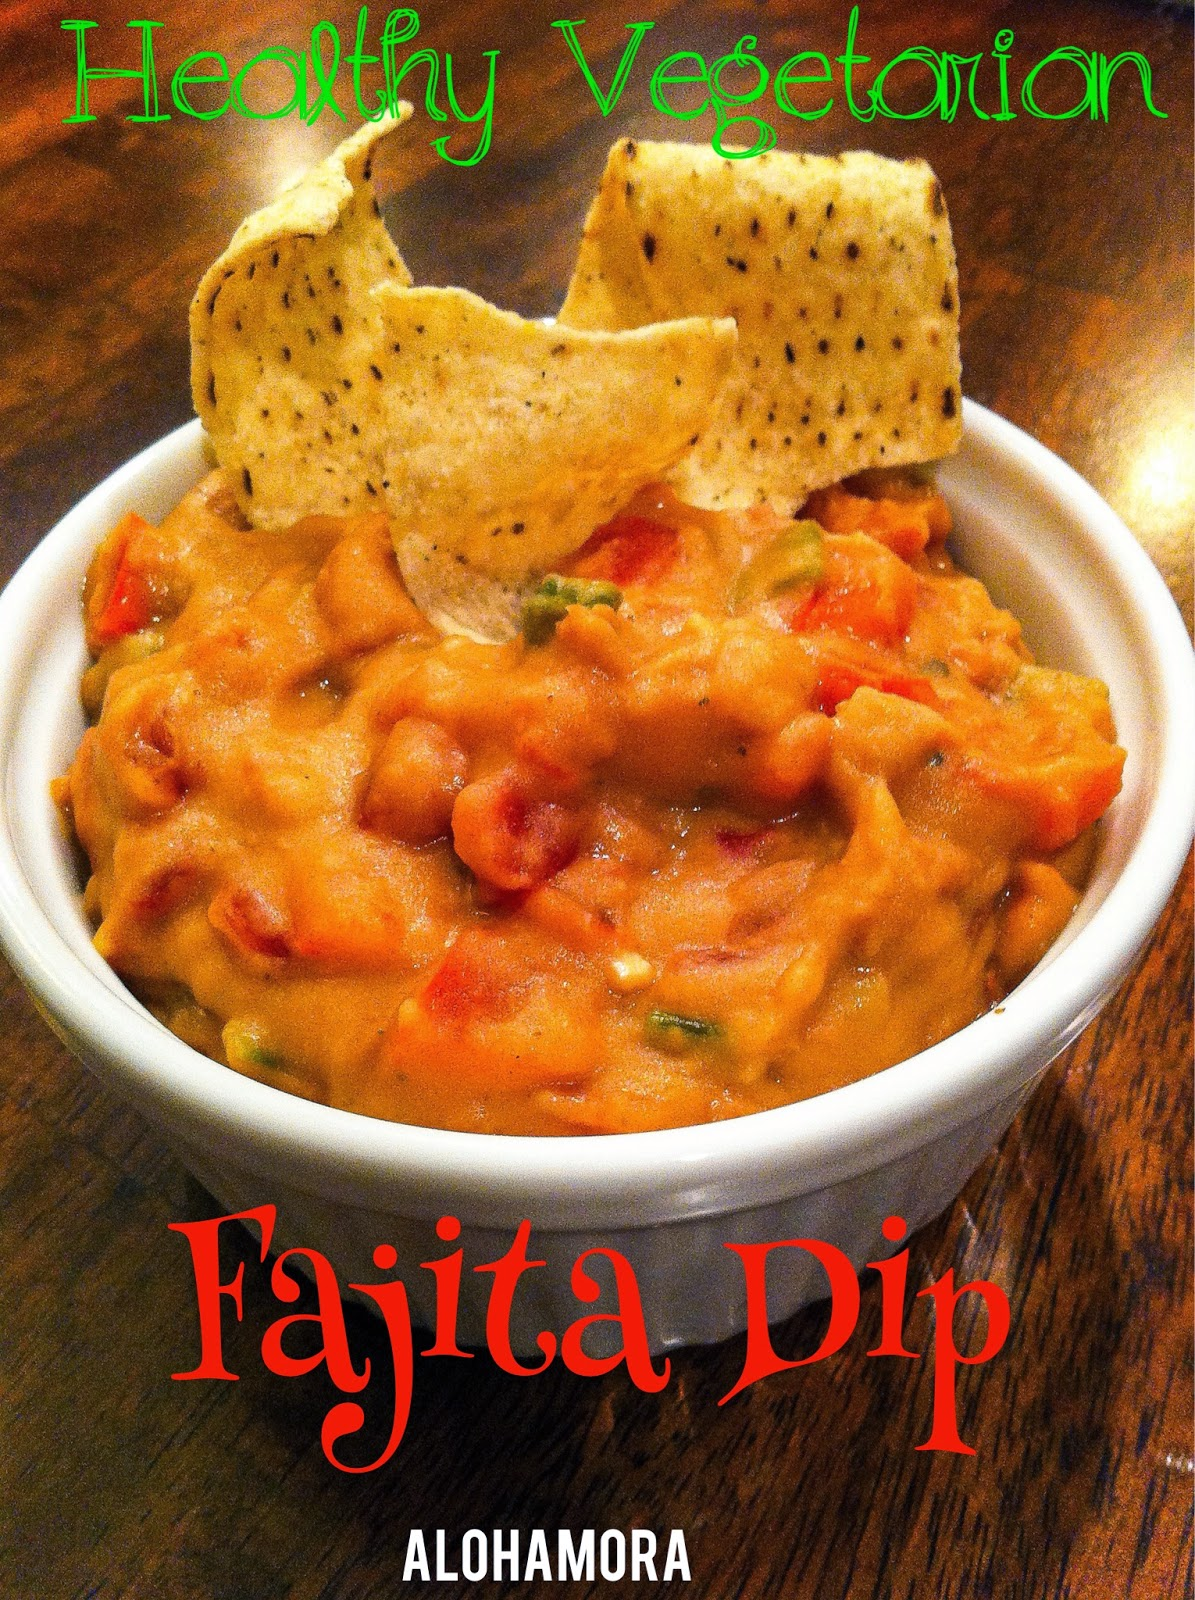 Healthy vegetarian Fajita Dip is easy to make, delicious, yummy, and perfect for any gathering. Plus it's gluten free.  Alohamora Open a Book http://alohamoraopenabook.blogspot.com/